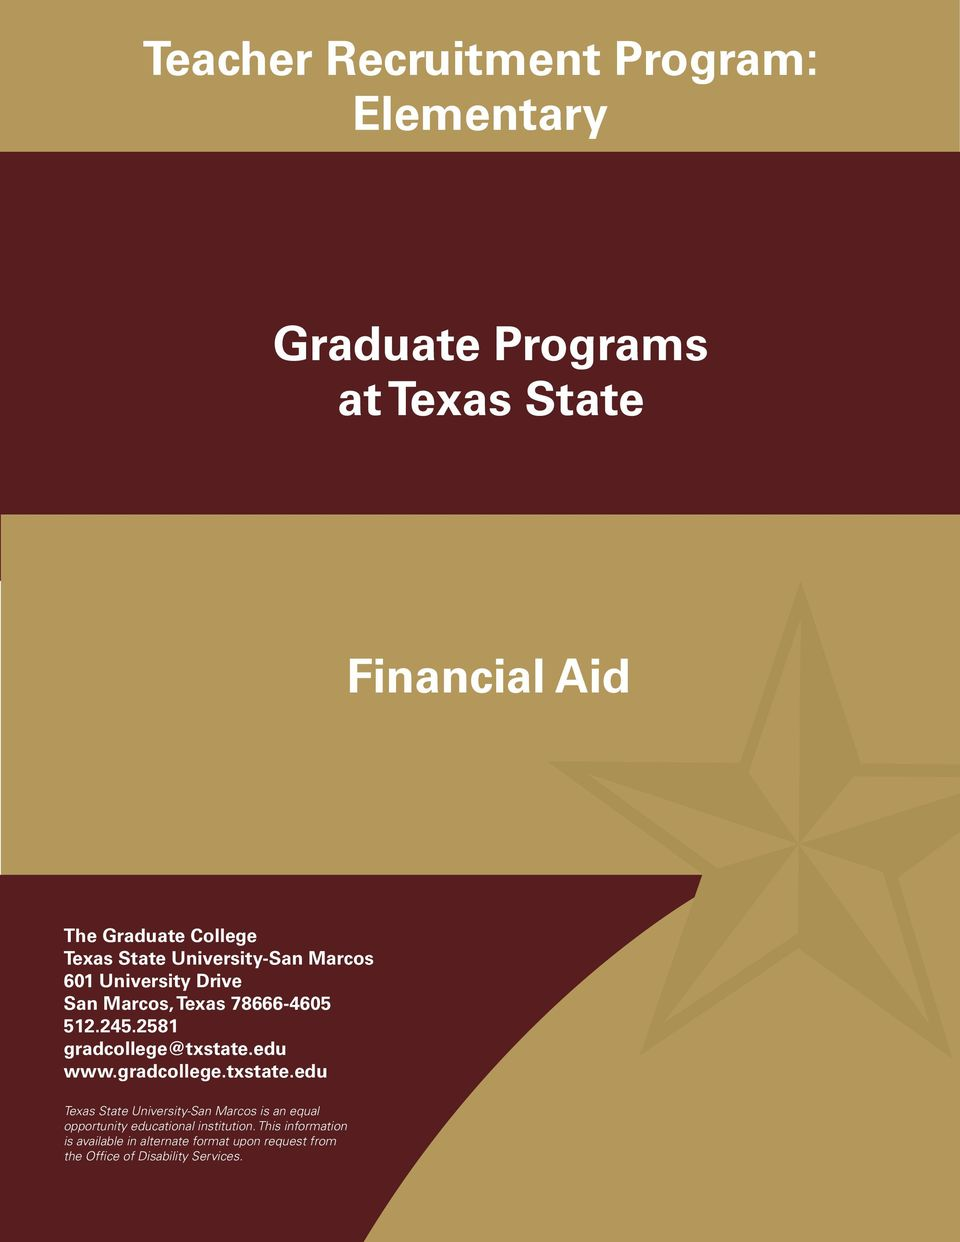 Master s Programs ECollege very of year, Applied Texas Arts State University-San Marcos Agricultural Education The Criminal Graduate helps Justice nearly College 17,000 of our students finance Family